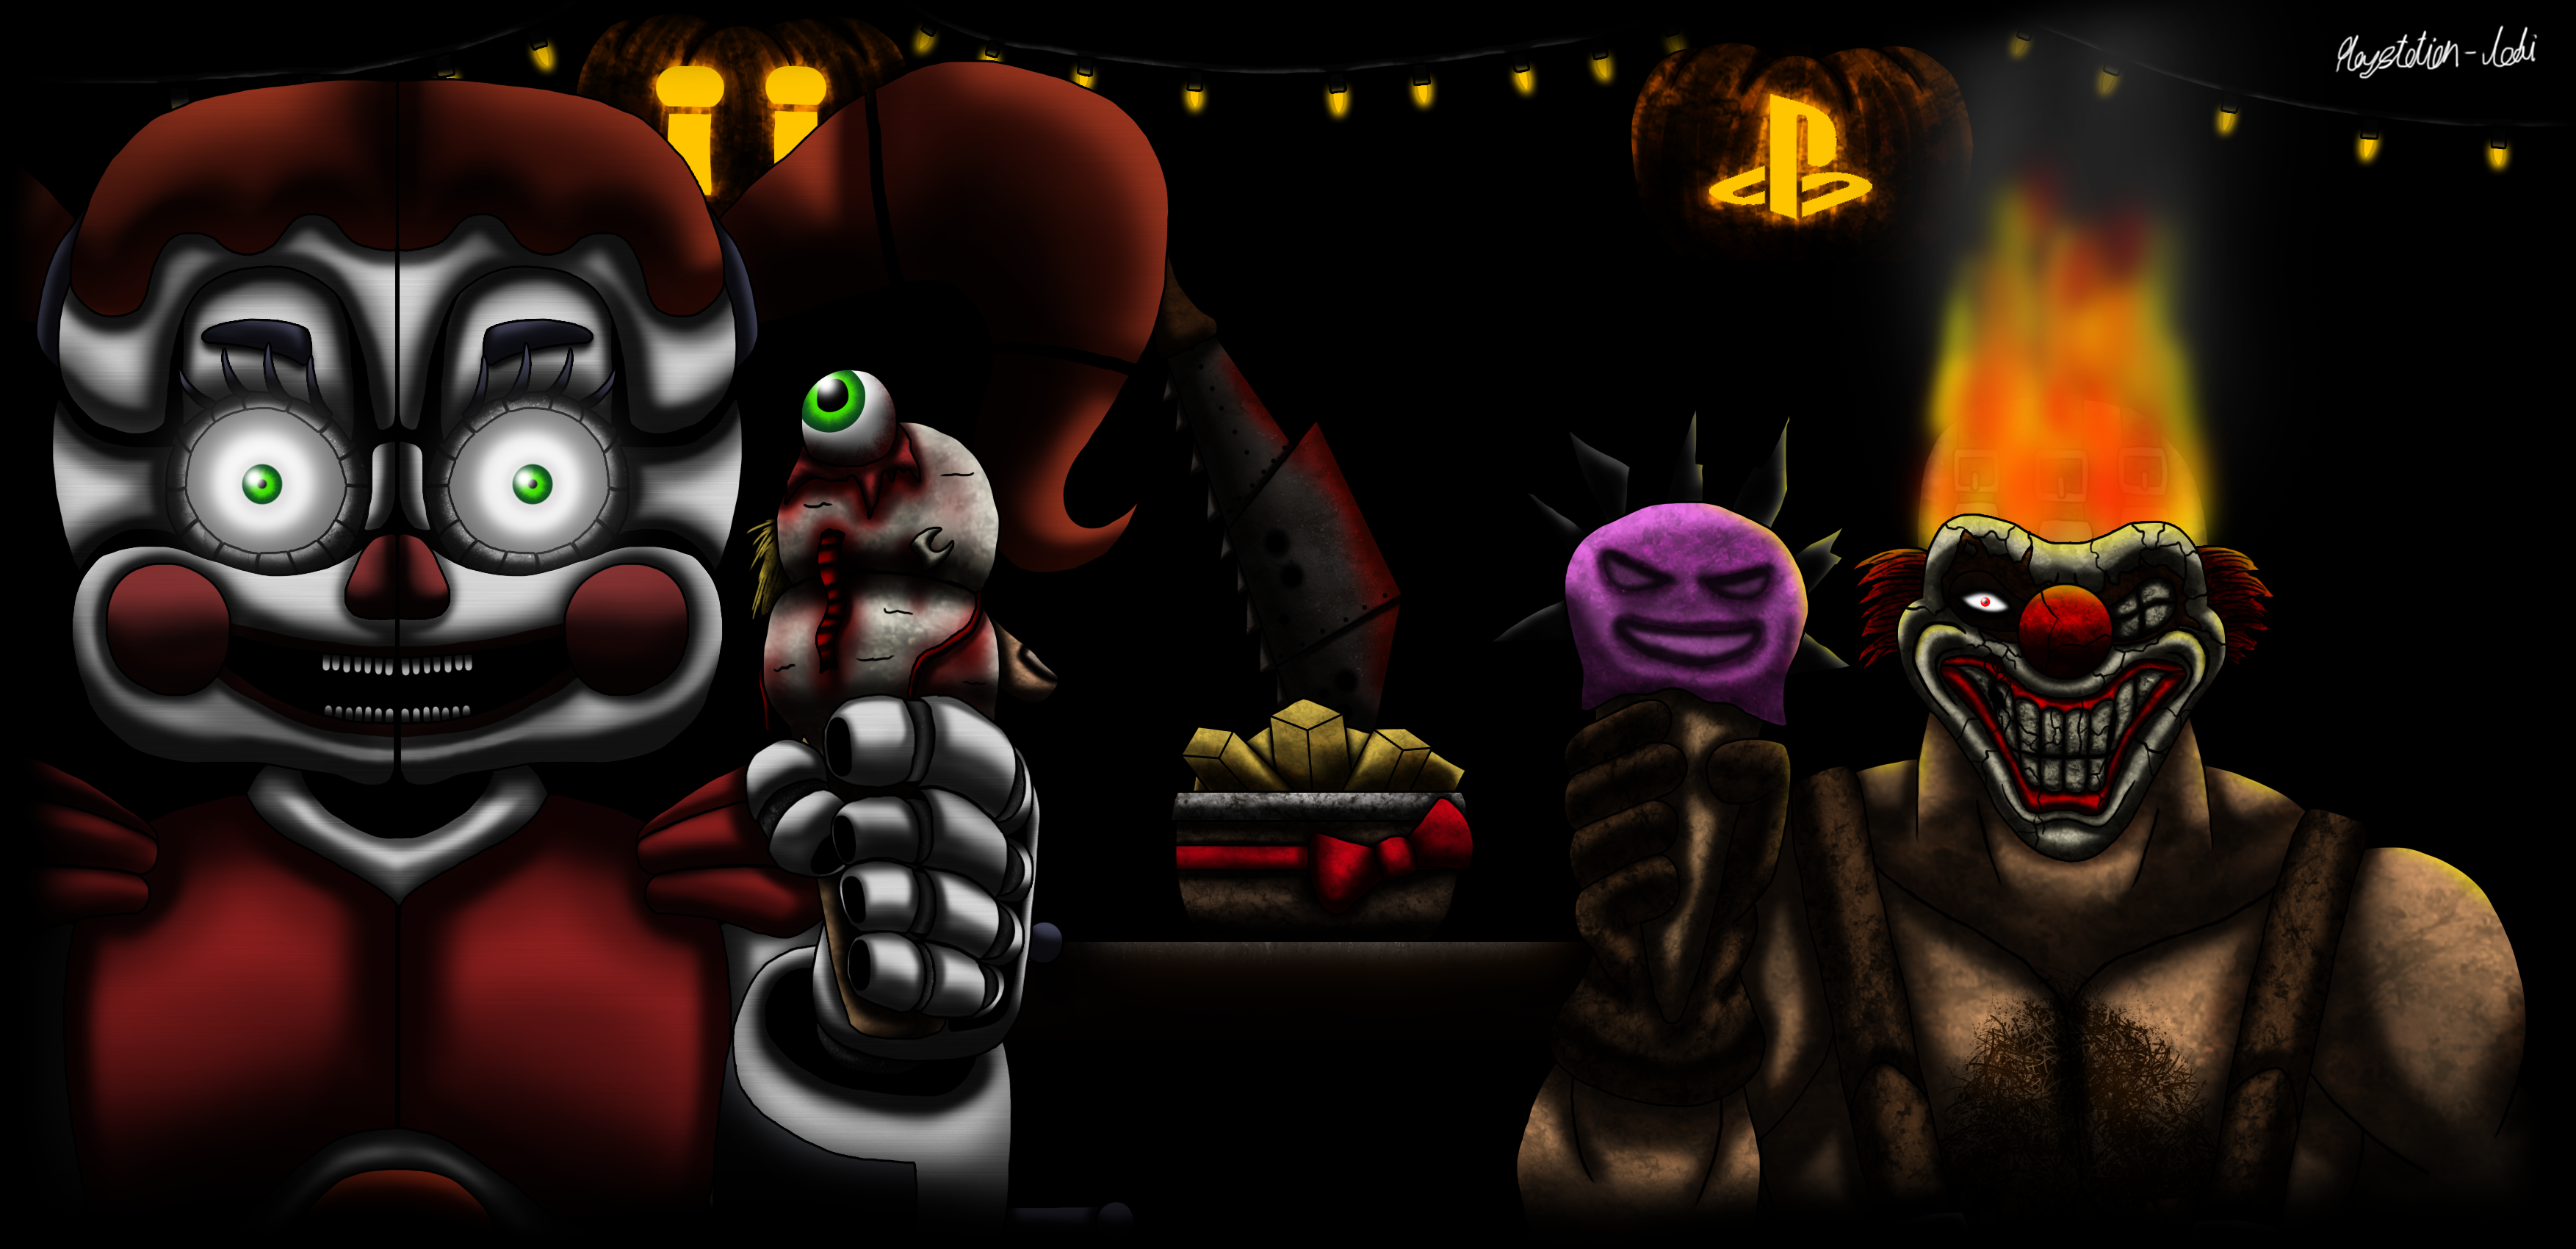 FNaF and PlayStation Ice Cream Halloween Party by Playstation-Jedi ...